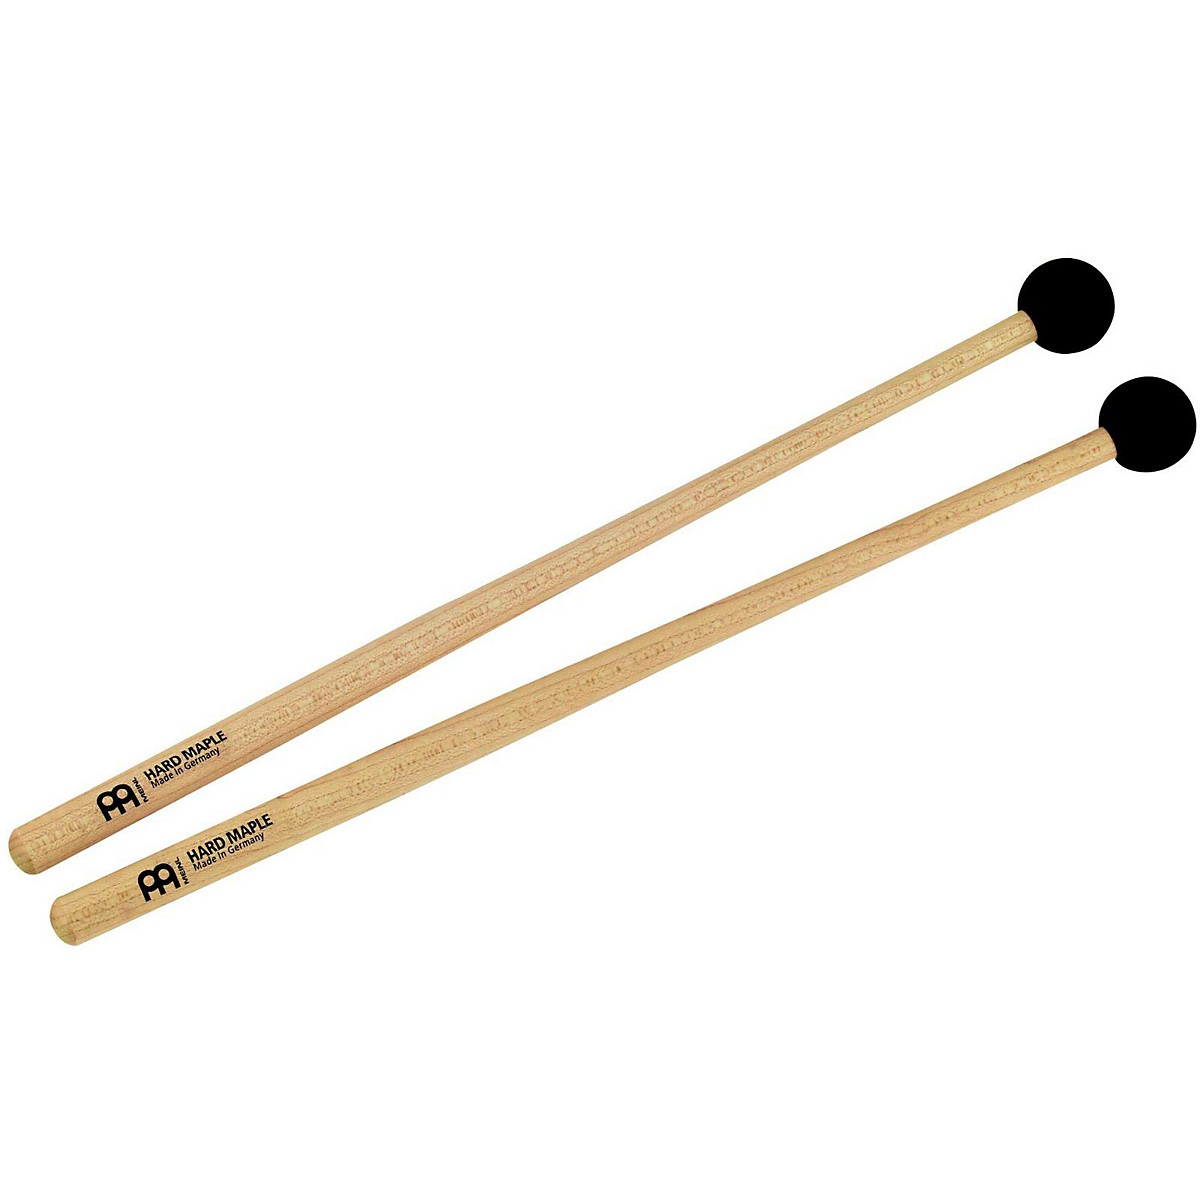 Meinl Percussion Mallet Pair with Small Soft Rubber Tips-Maple Handle